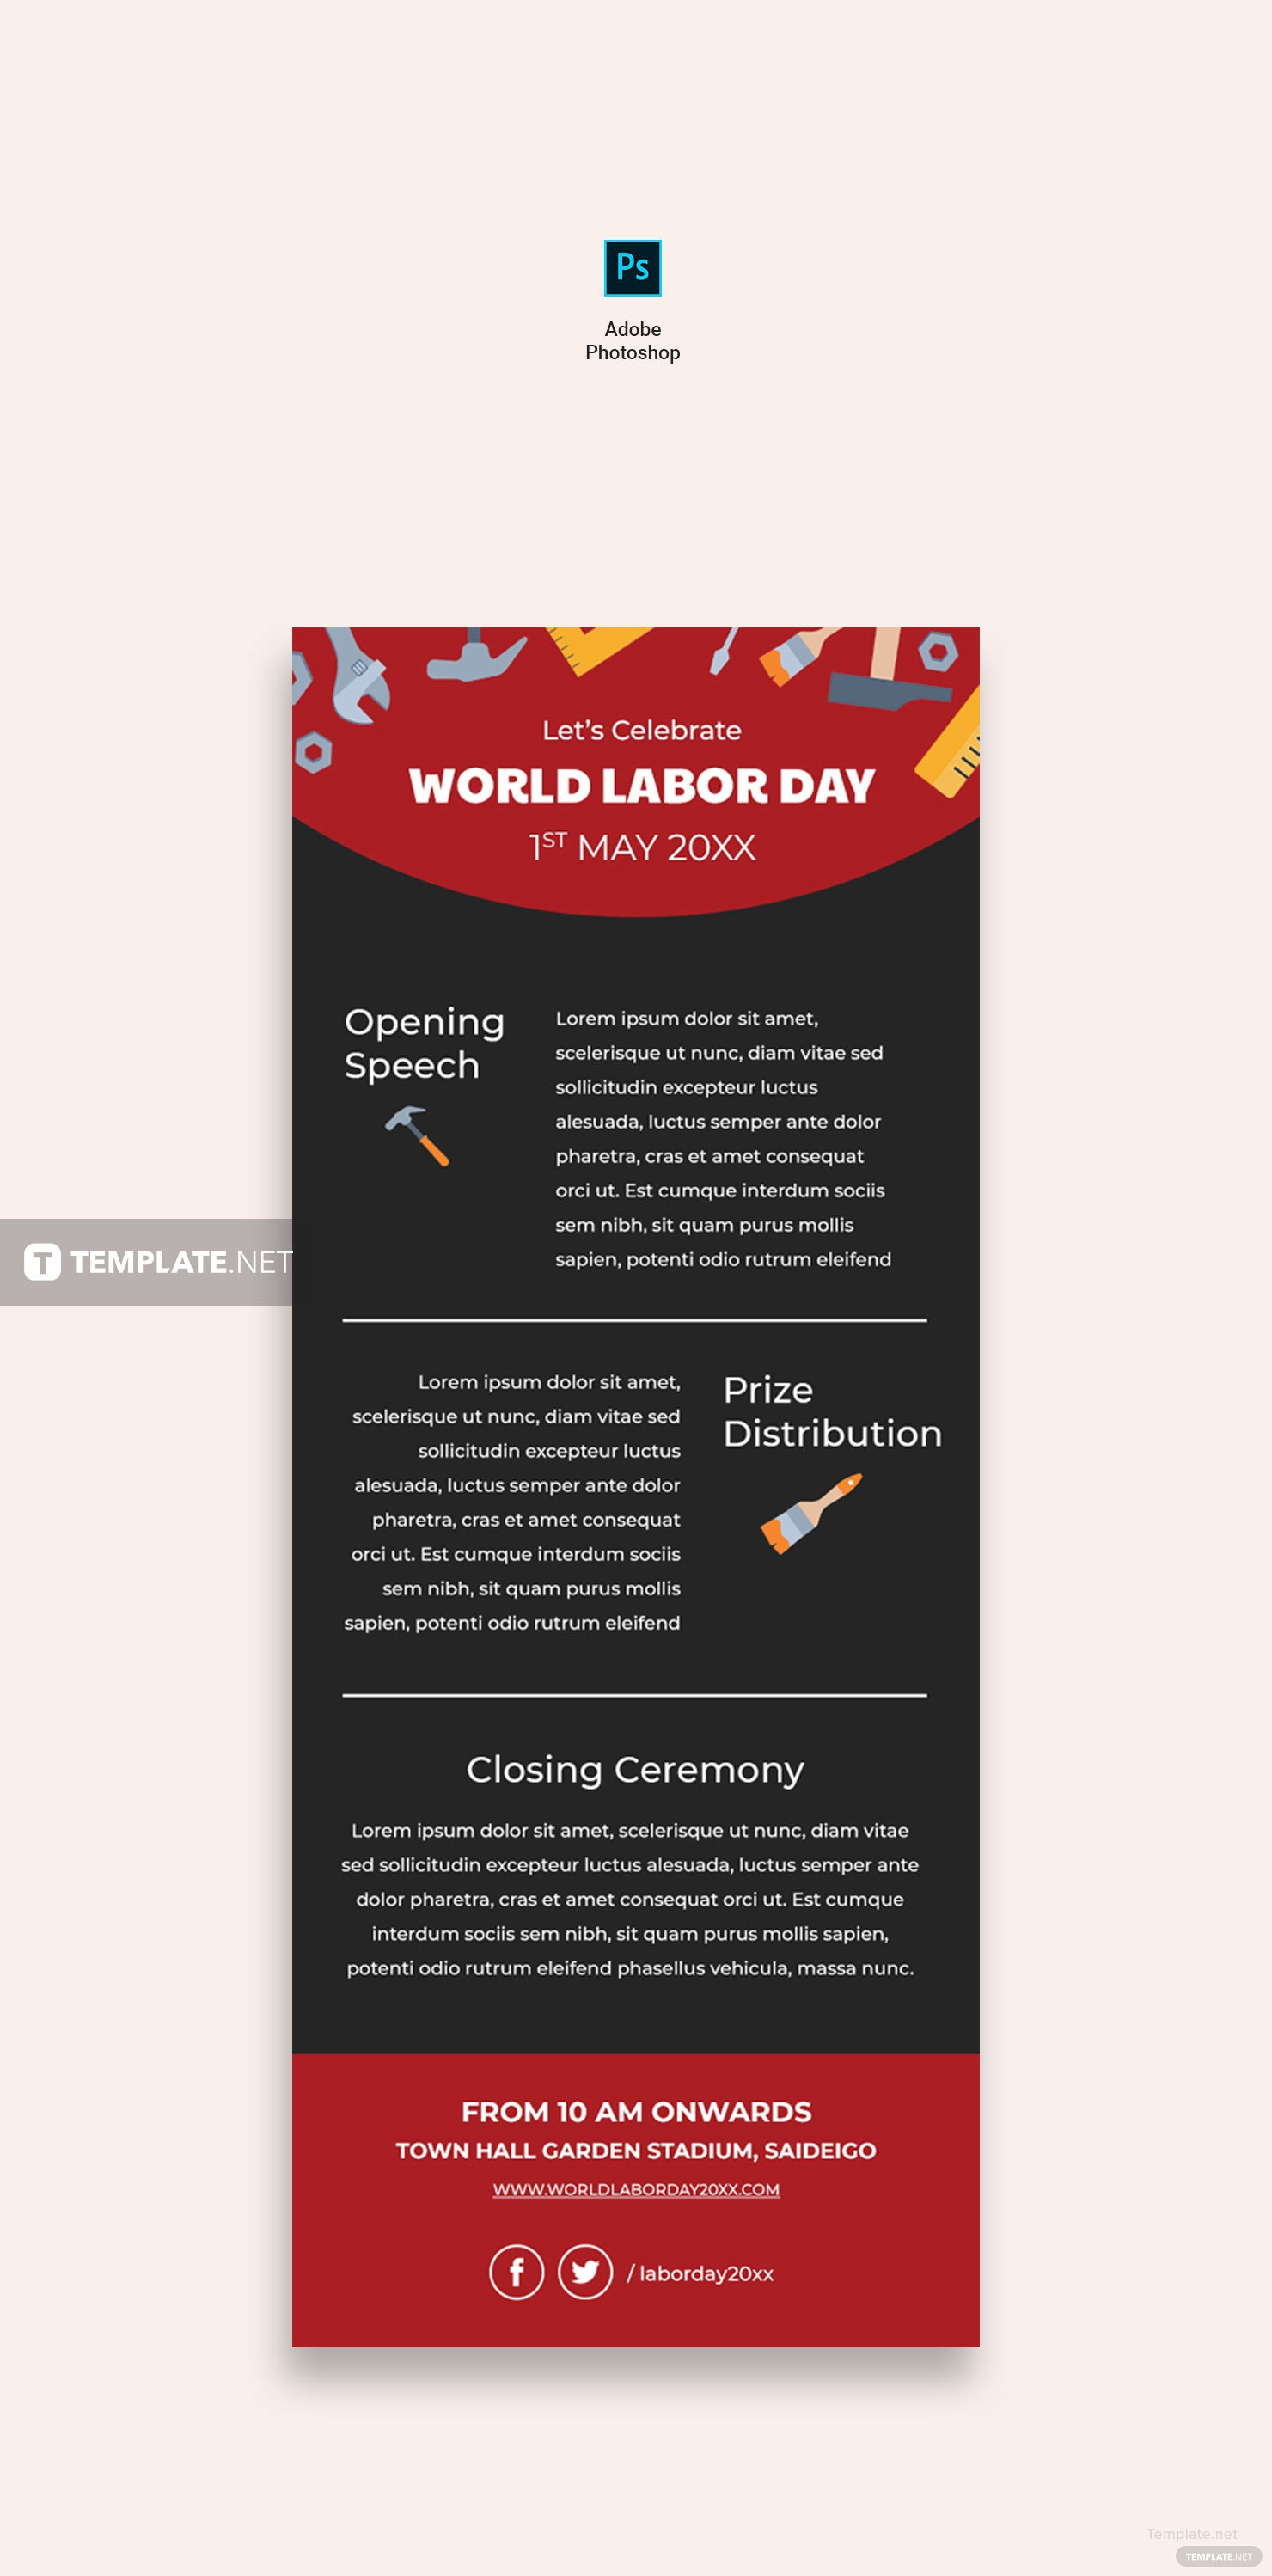 Free Labor Day Email Newsletter Template in Adobe Photoshop, HTML ...